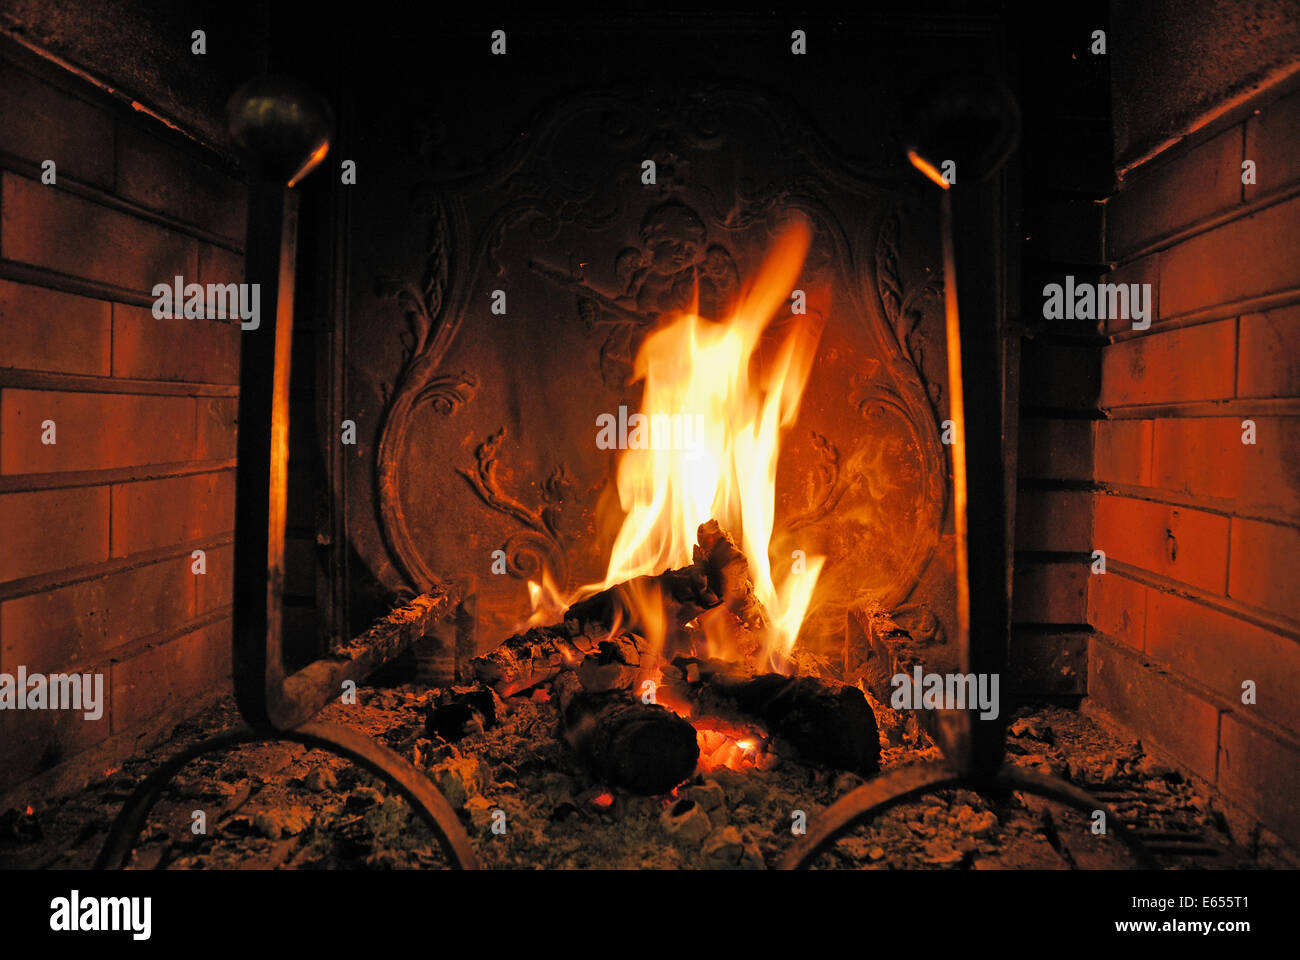 Log fire burning in a fireplace - Stock Image